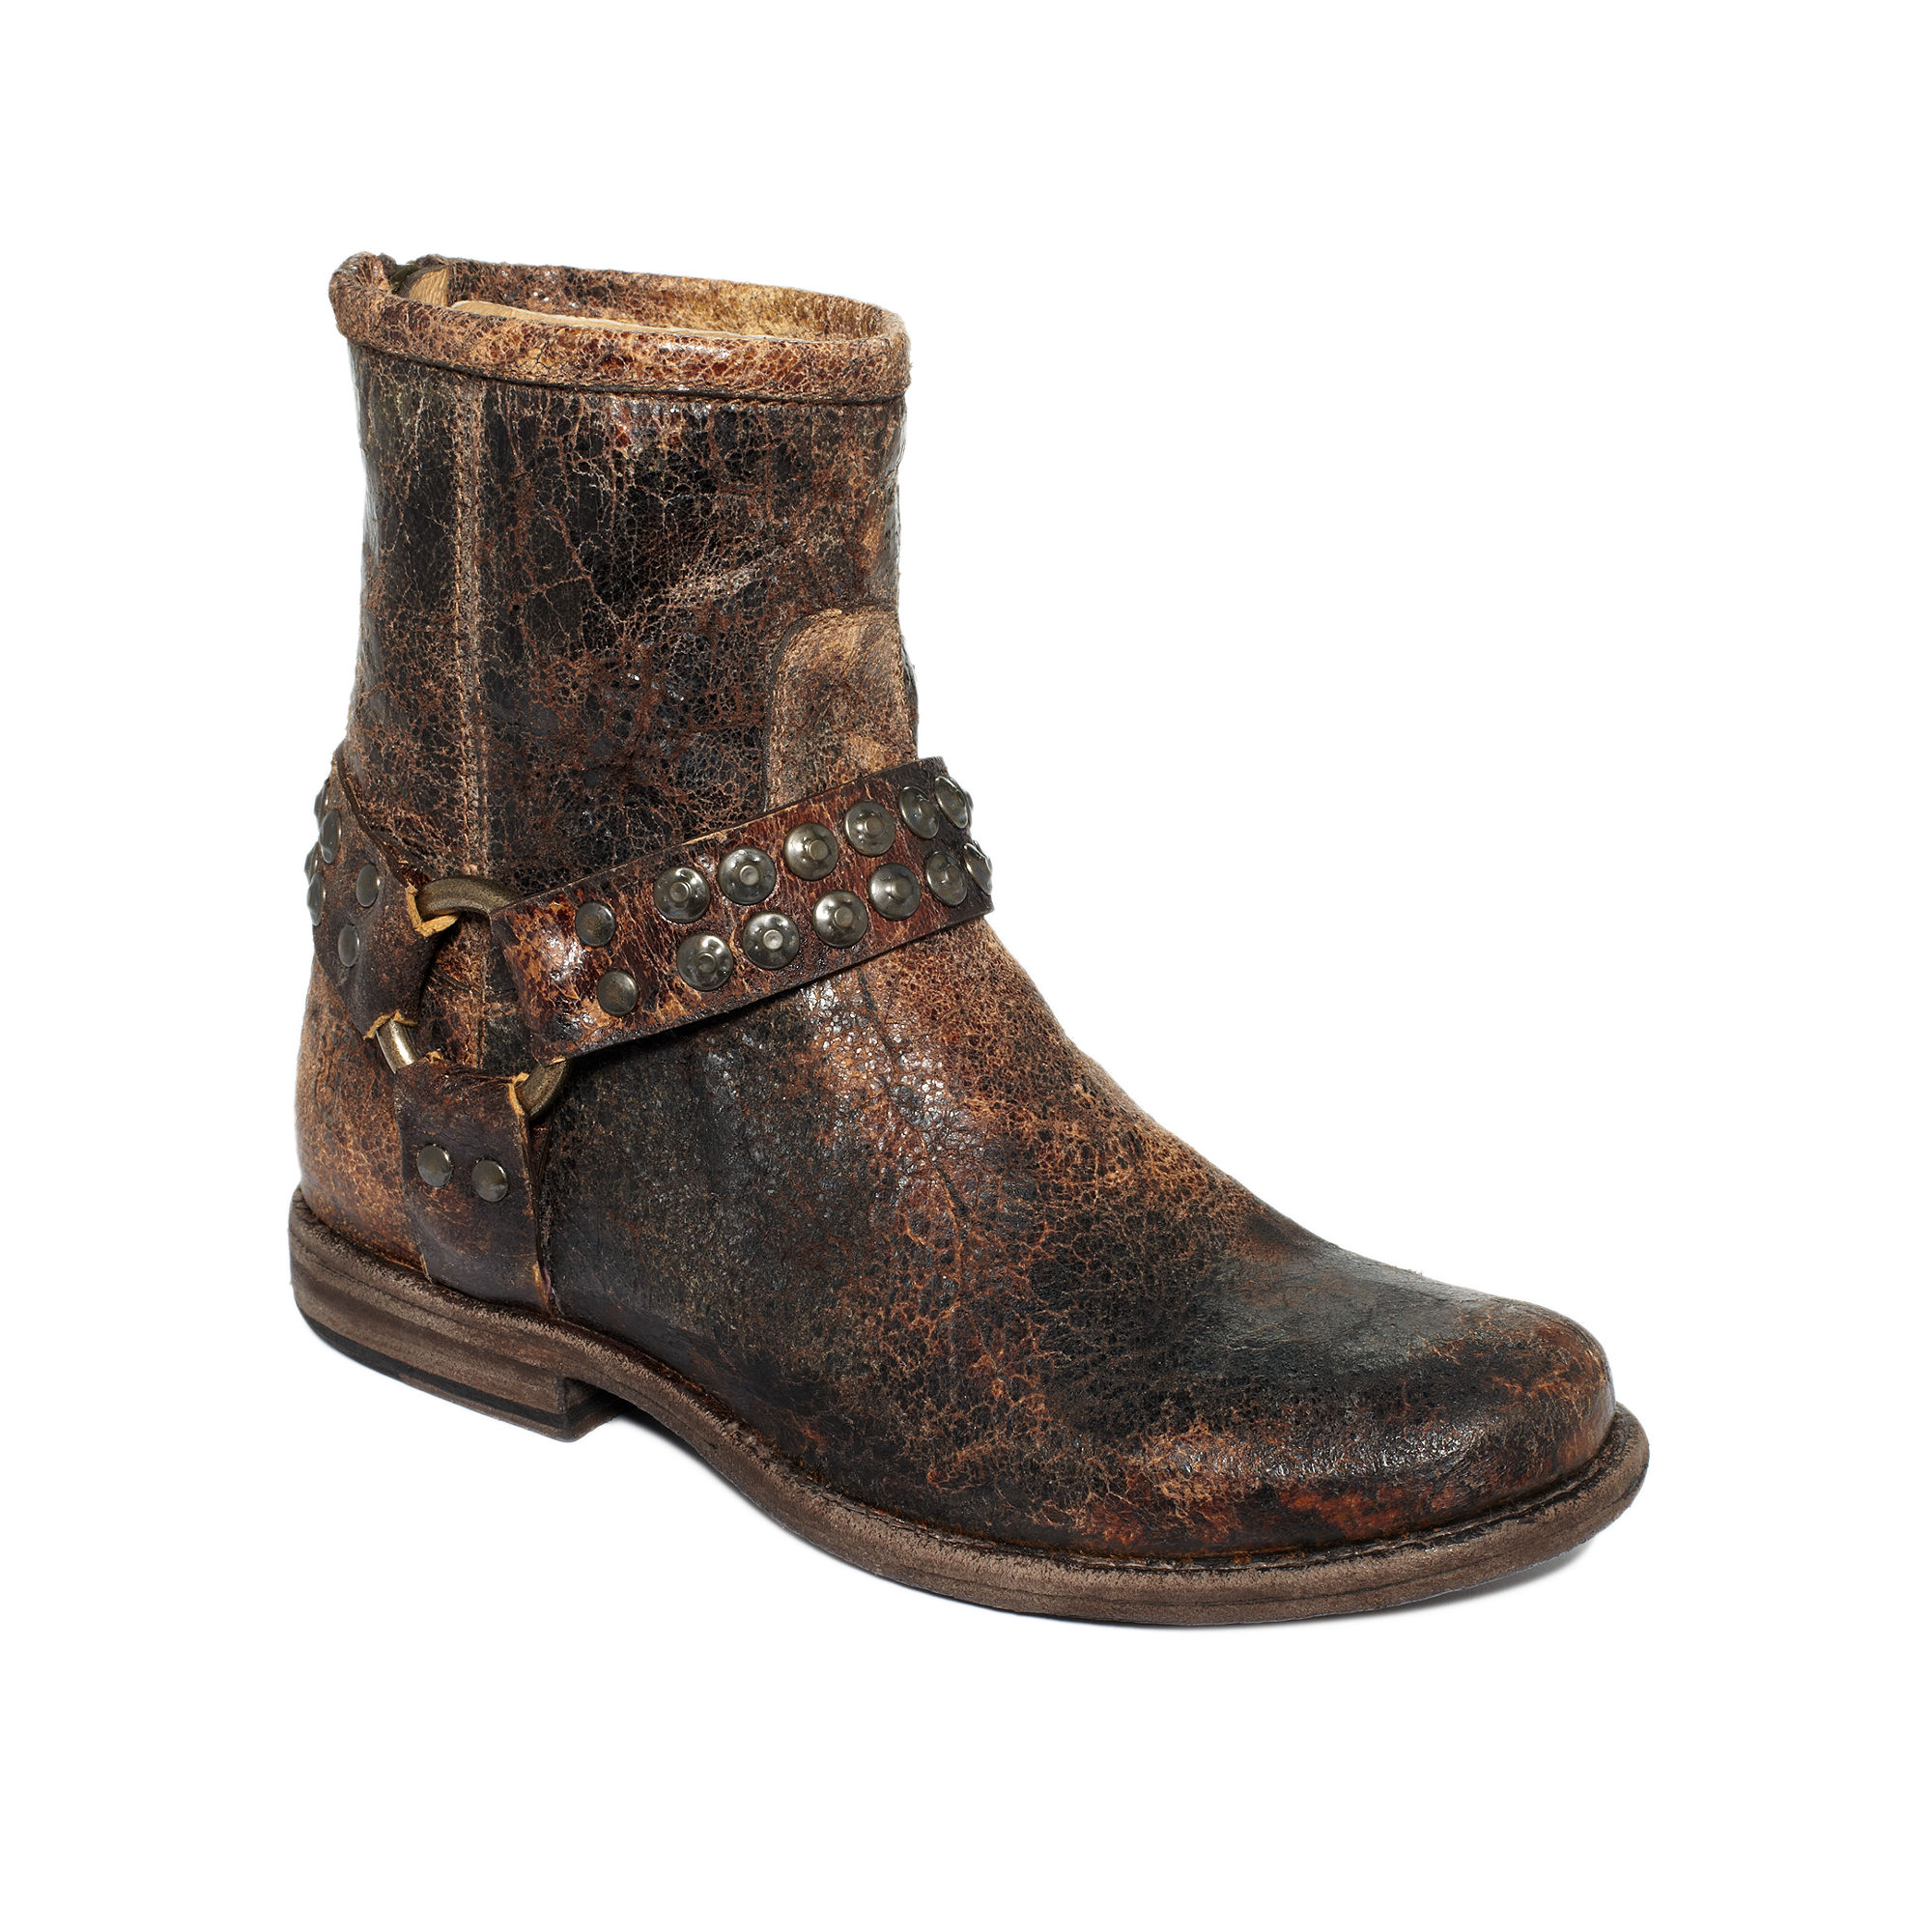 Frye Phillip Booties in Brown (chocolate glazed vintage leather